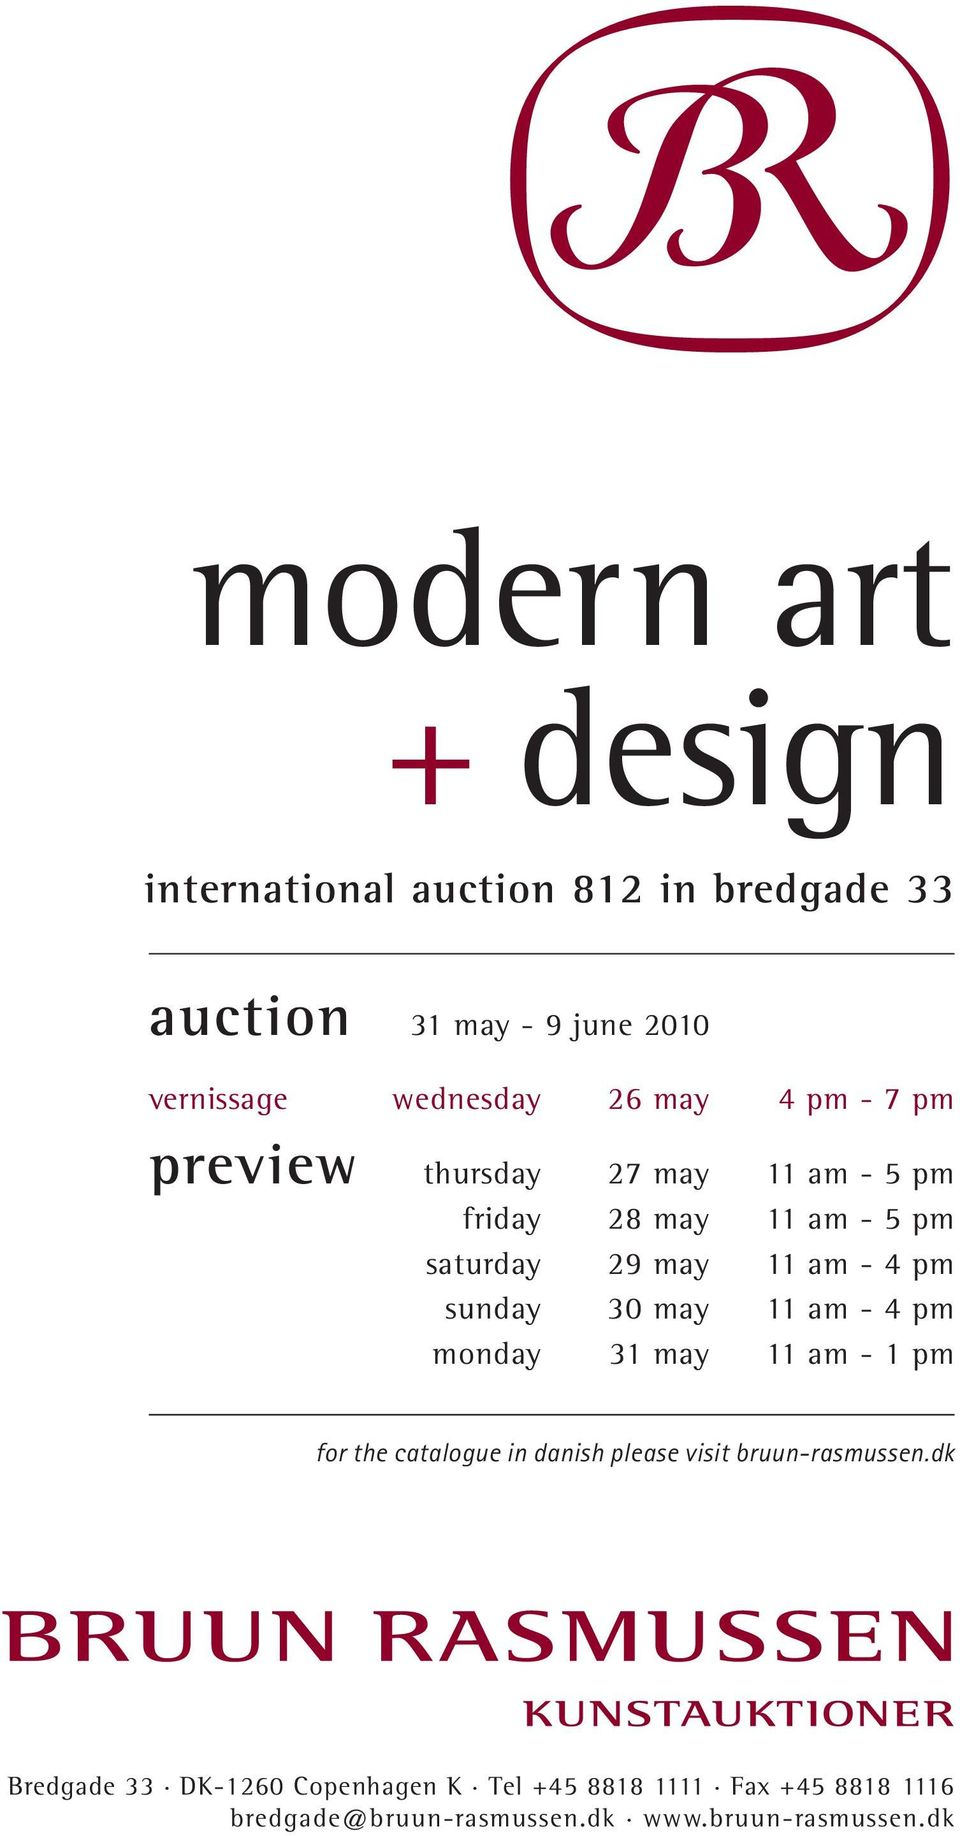 sunday 30 may 11 am - 4 pm monday 31 may 11 am - 1 pm for the catalogue in danish please visit bruun-rasmussen.